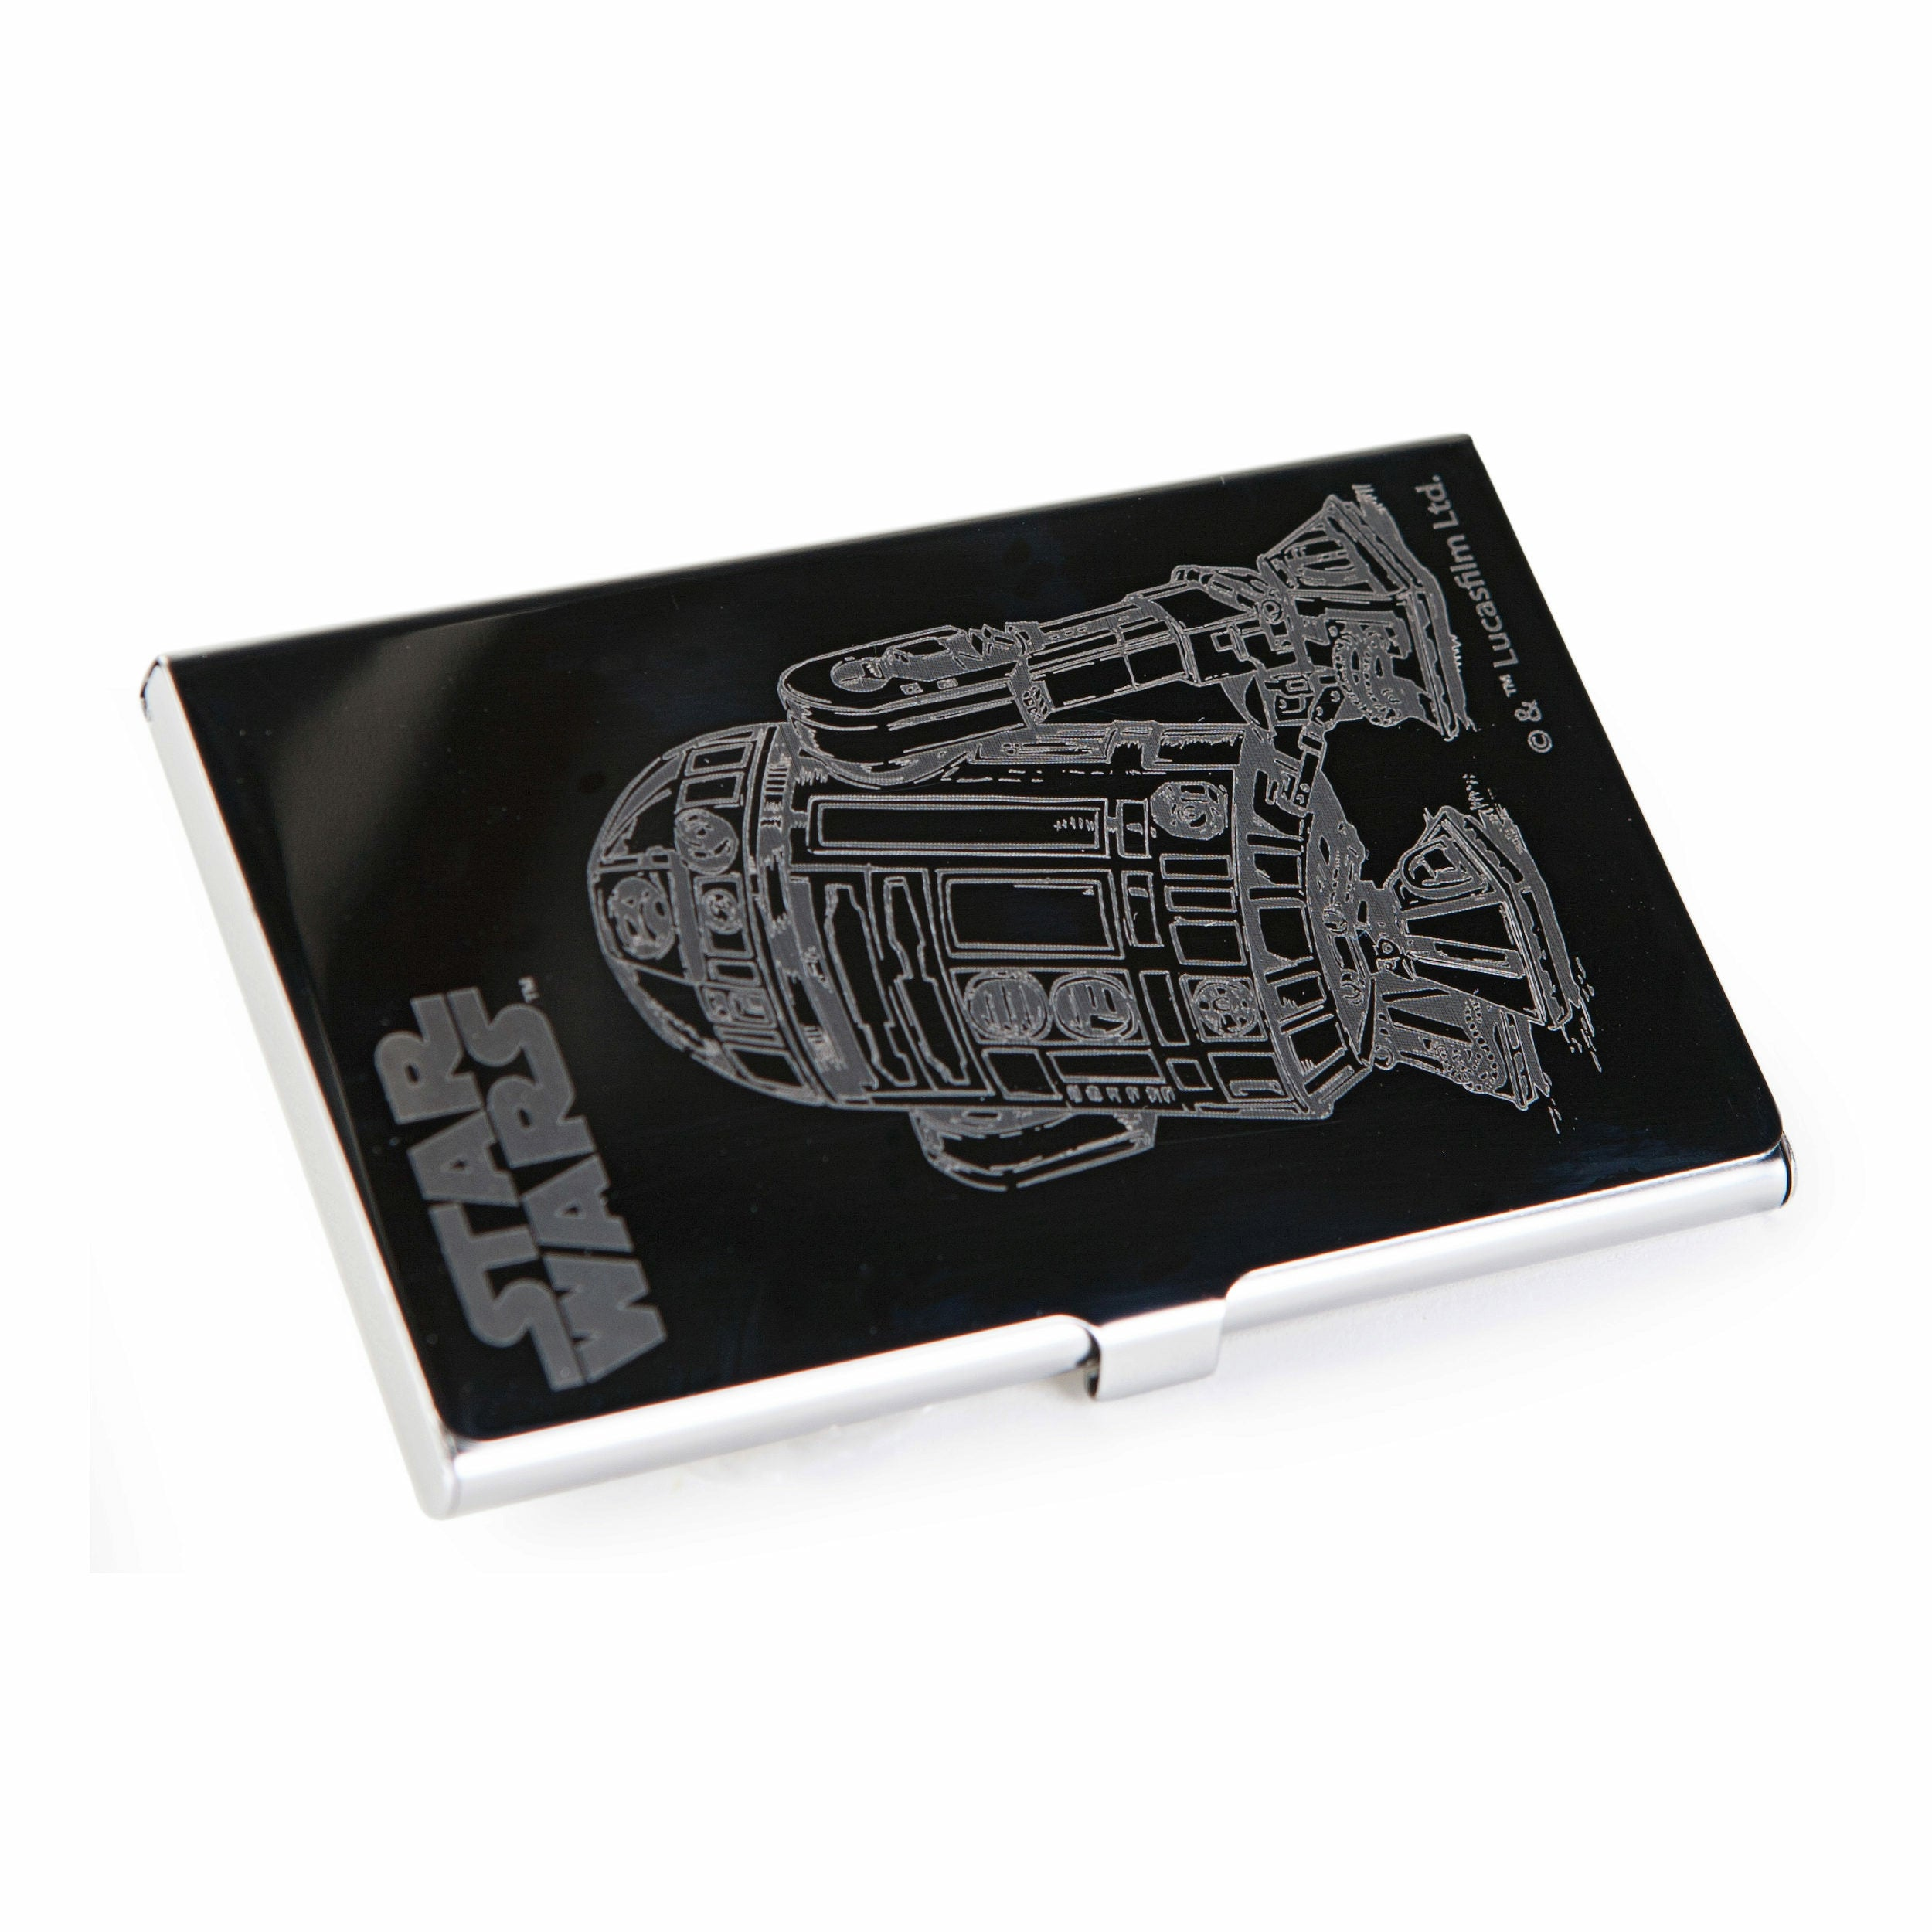 Star Wars The Force Awakens R2-D2 Stainless Steel Card Case